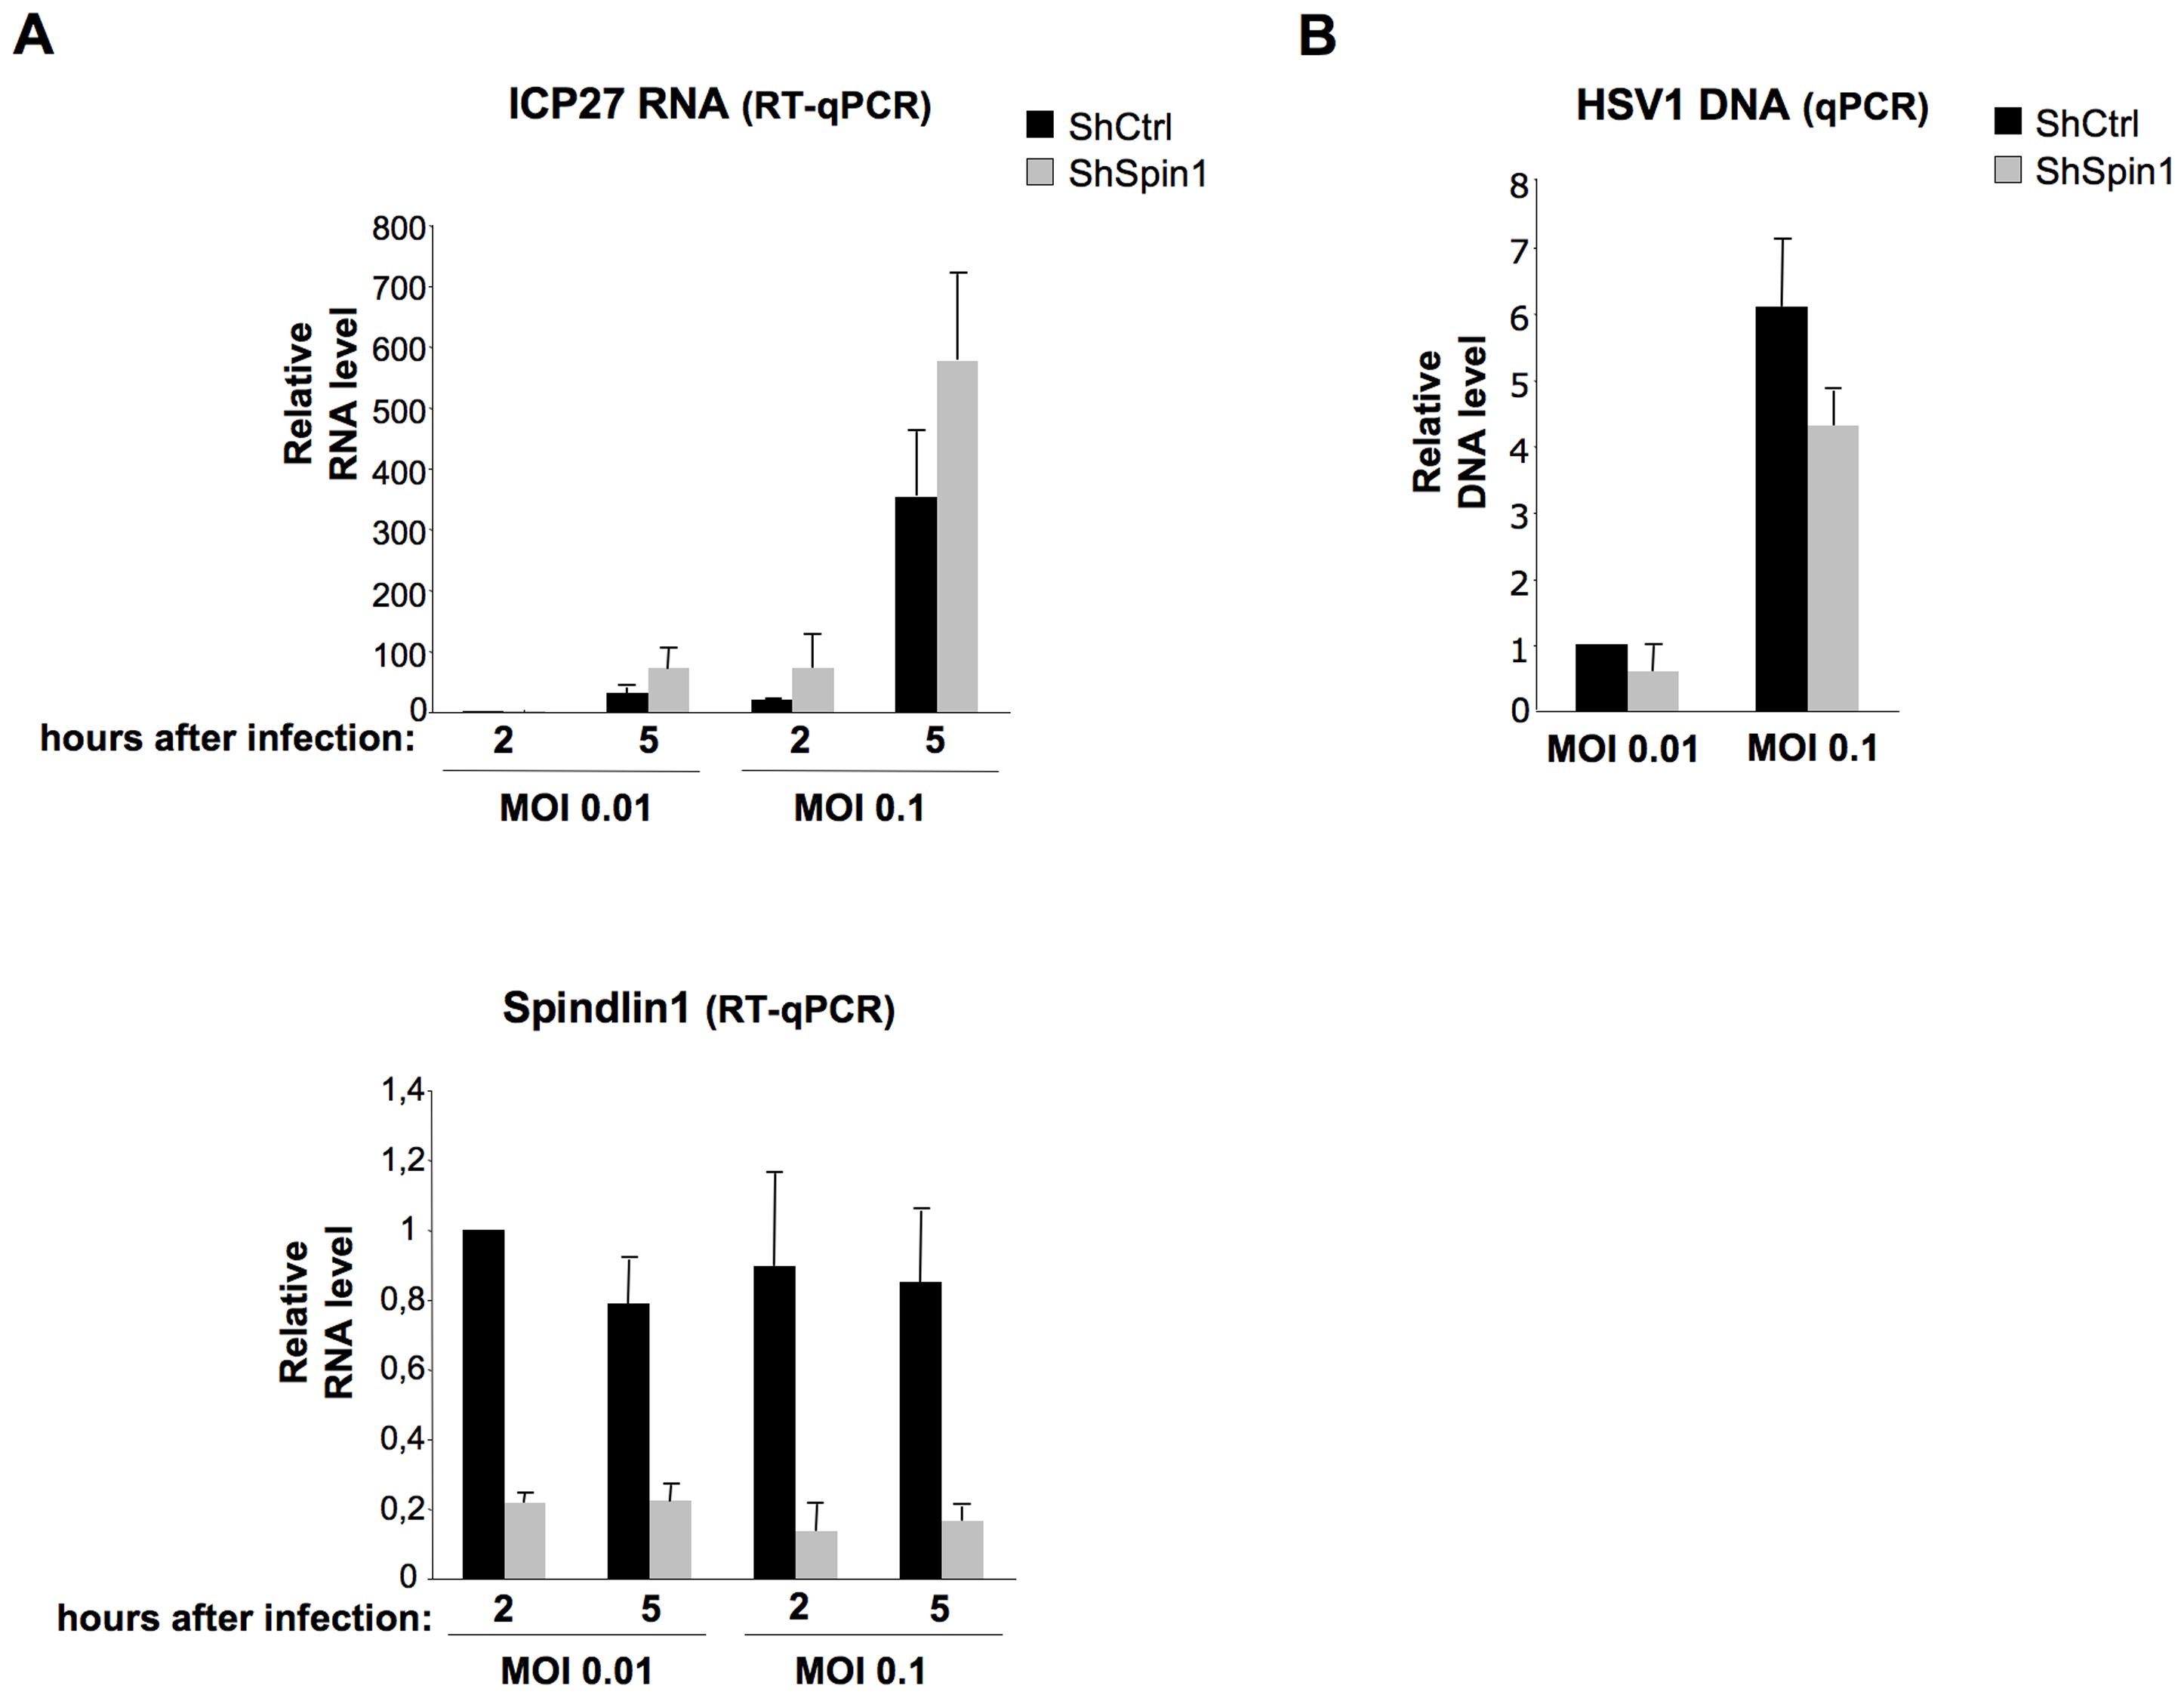 Spindlin1 represses the transcription of HSV-1 during infection.